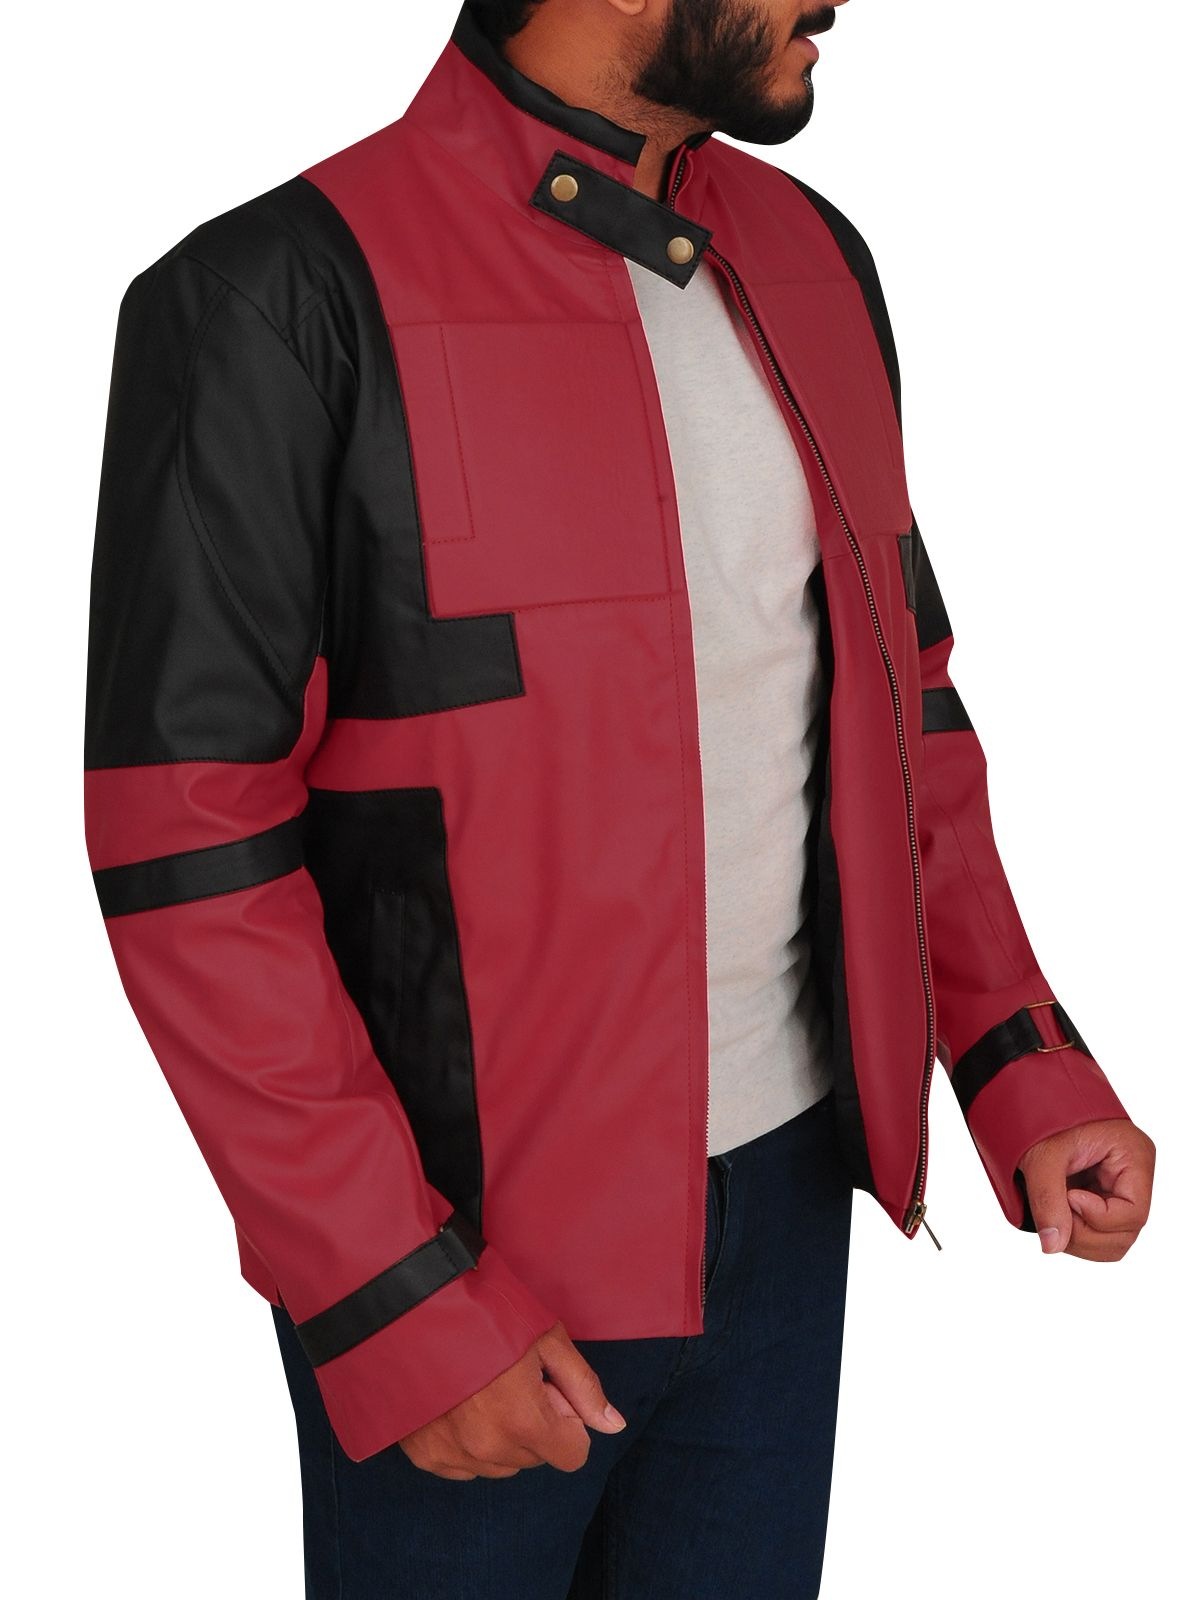 1c222731e6a0f MauveTree present you this cool looking red and black biker jacket for men.  It is made up of faux leather. The design of the jacket is inspired by  costume ...